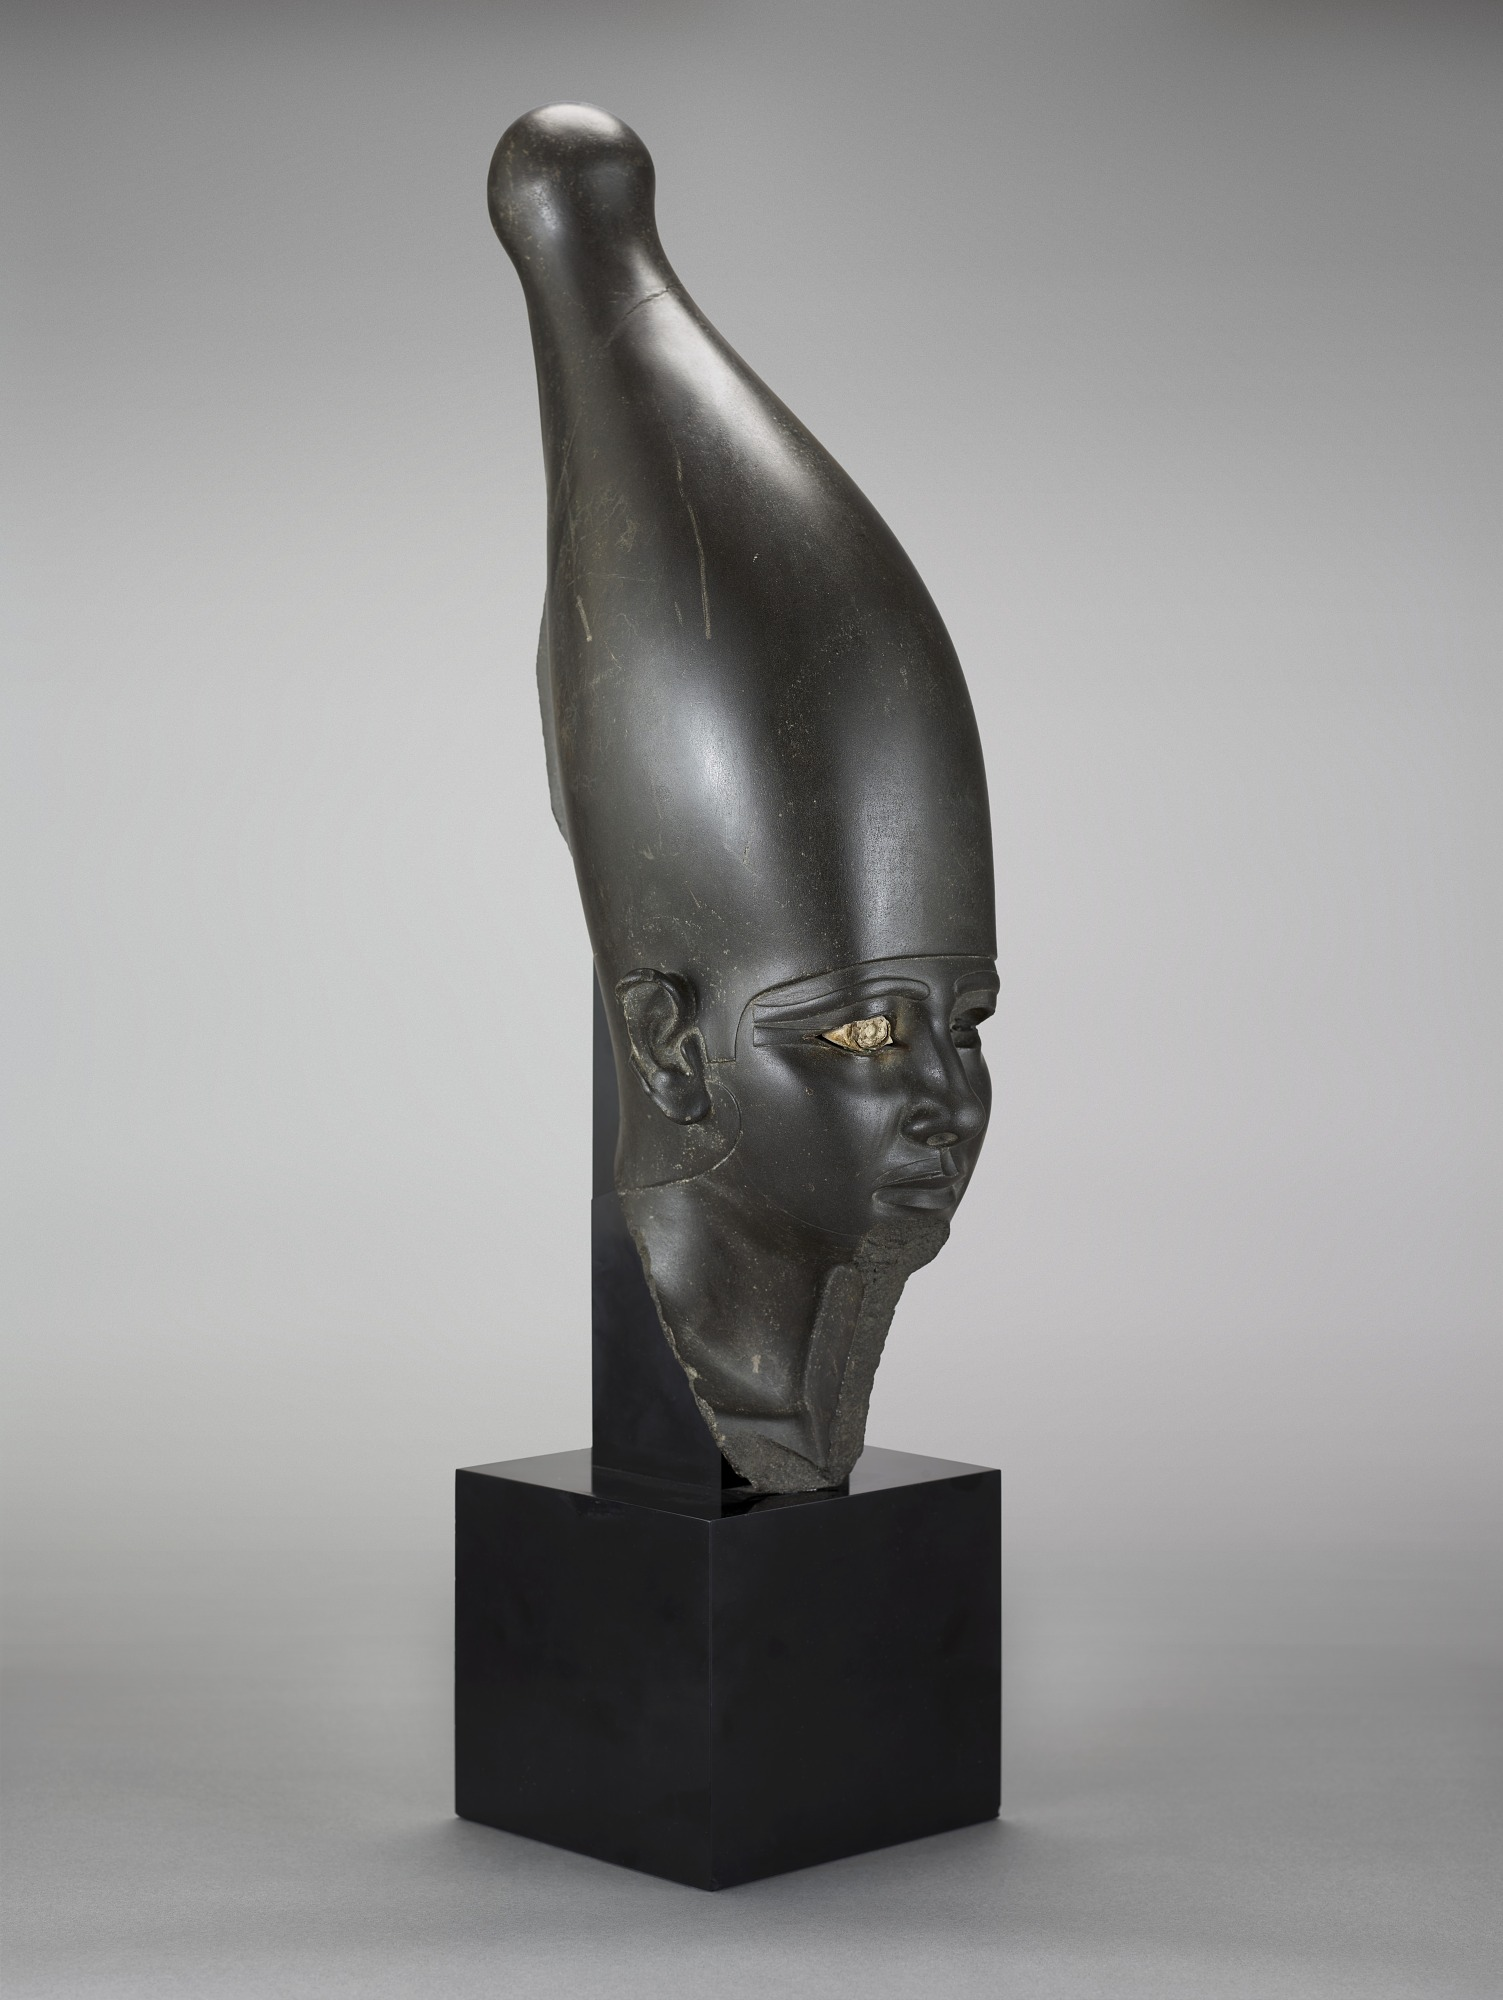 proper right: Head of a pharaoh